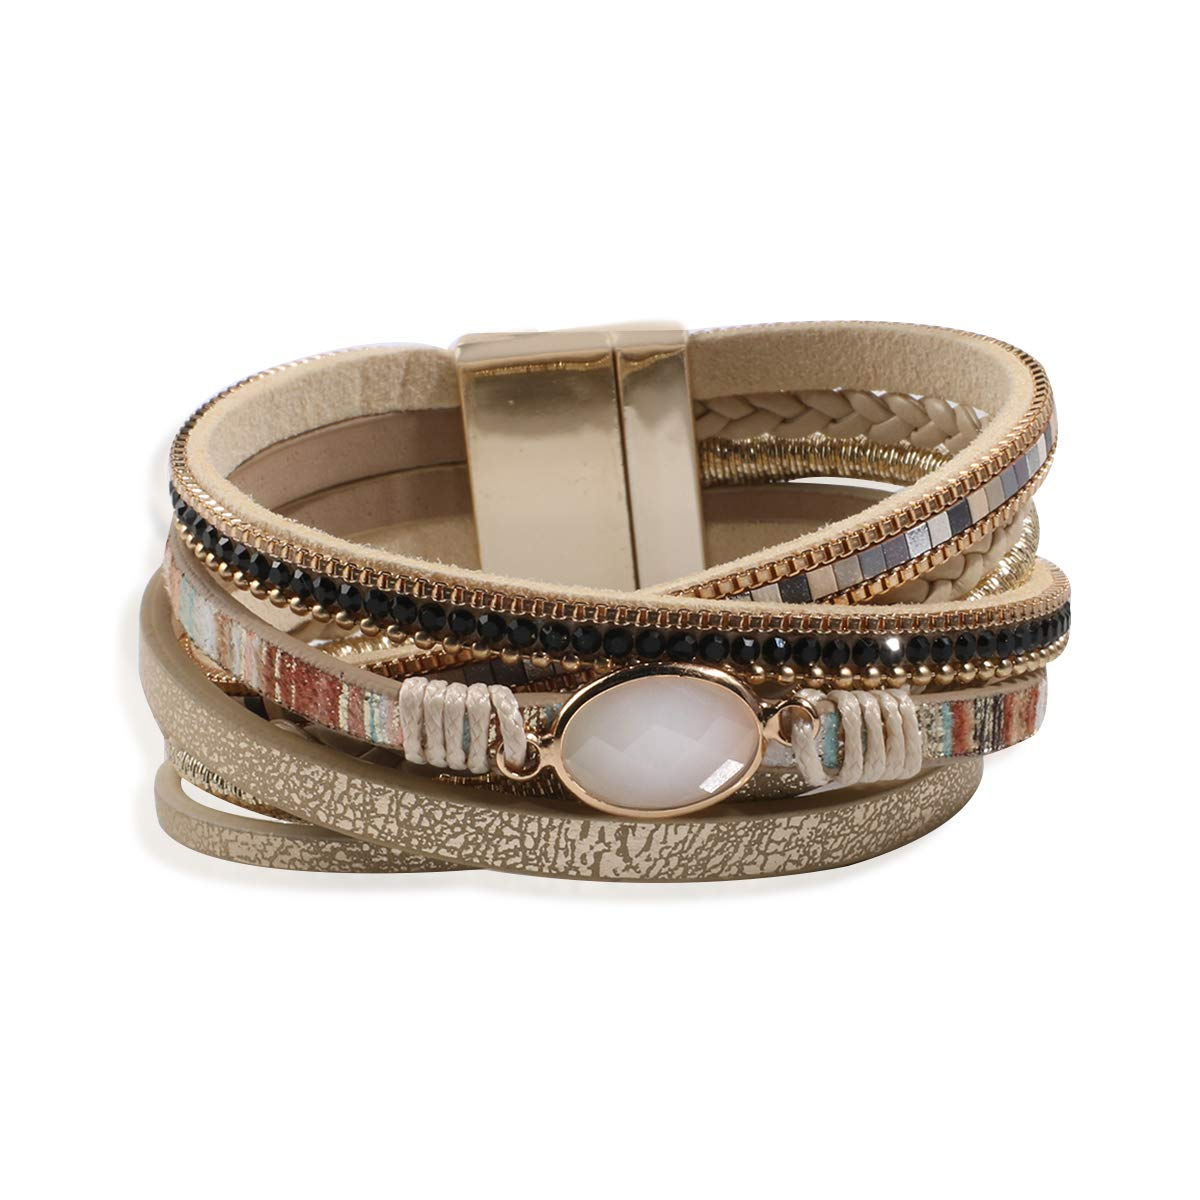 Artilady Leather Wrap Bracelet for Women - Handmade Clasp Bangle Bracelet with Pearl Druzy Crystal Wristbands Jewelry Gift for Sisters Teen Girls and Mother